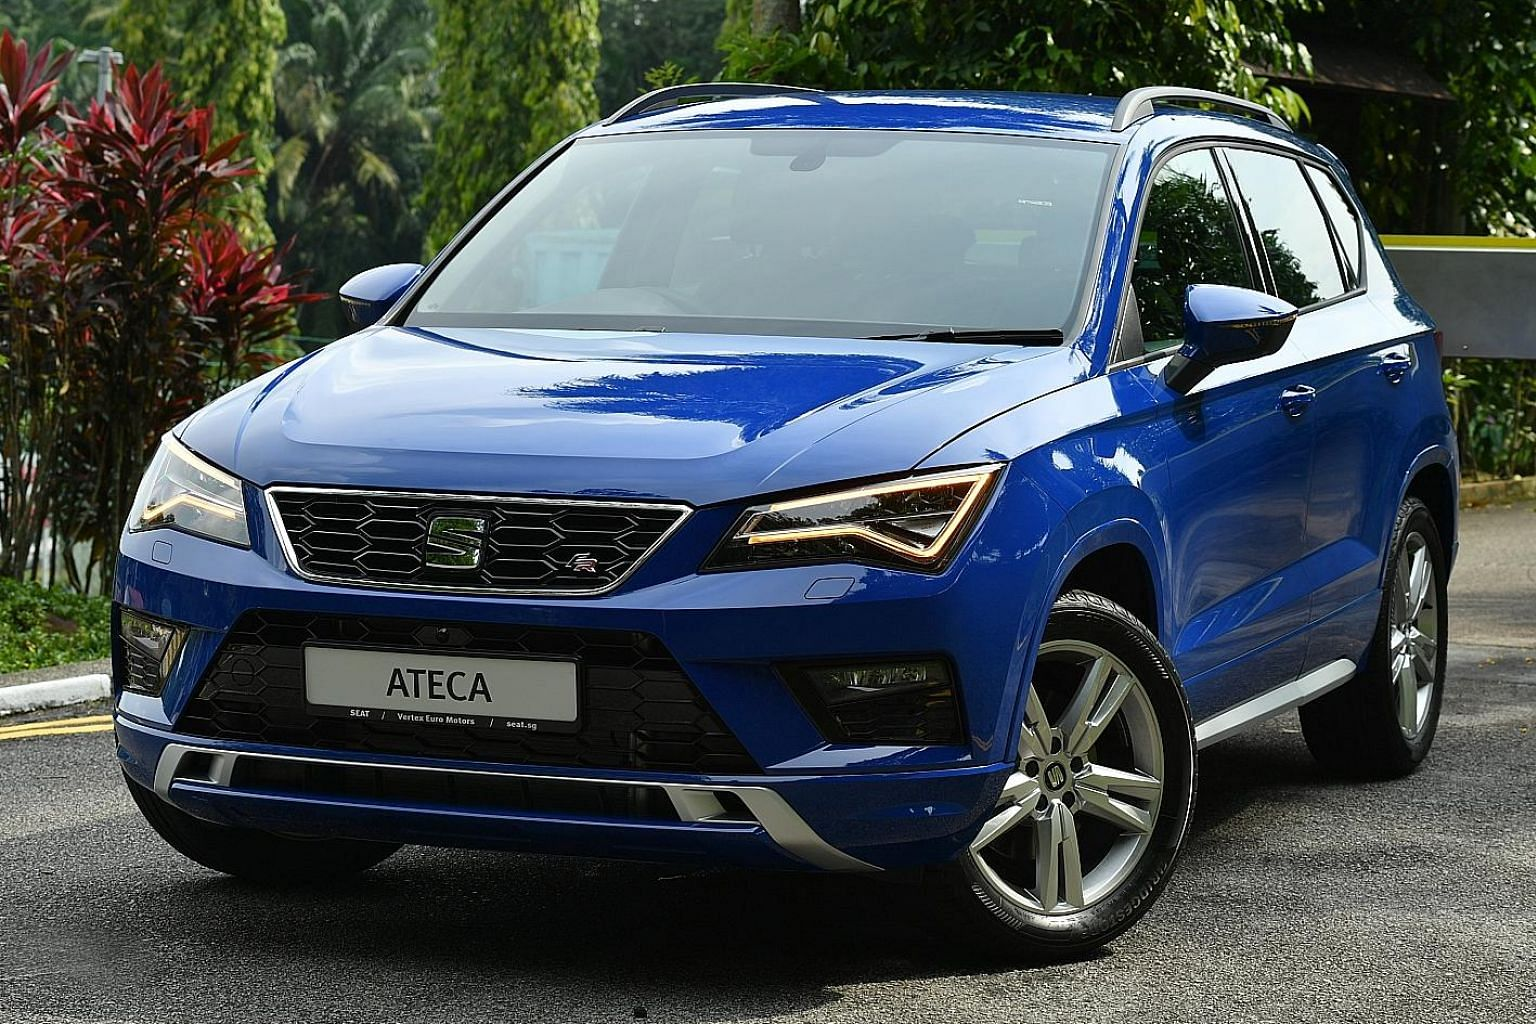 The Seat Ateca has a four-wheel-drive mode, which is unusual among compact crossovers on sale in Singapore.